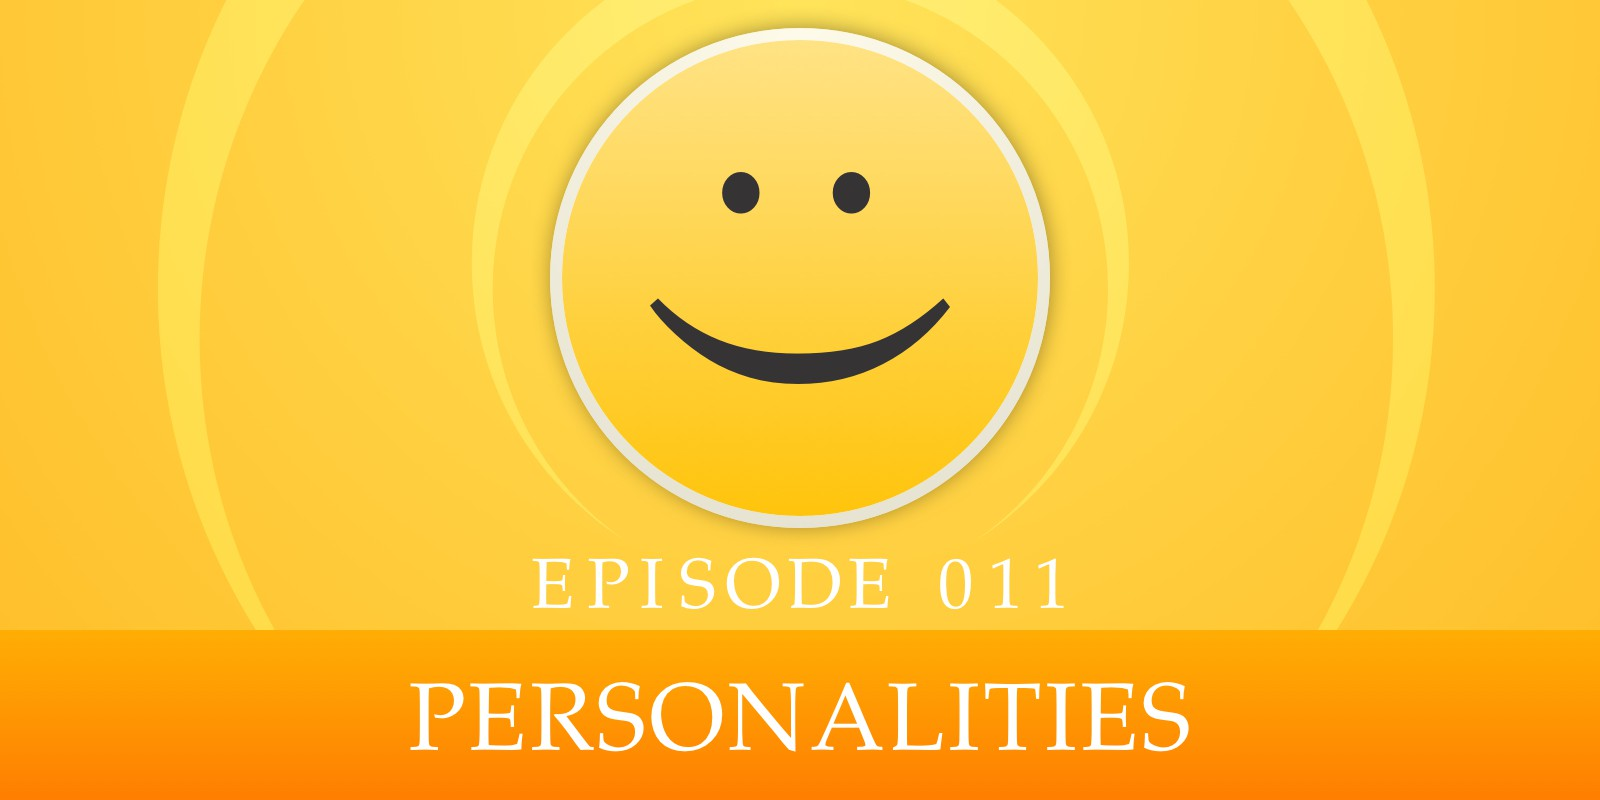 Episode 011: Personalities